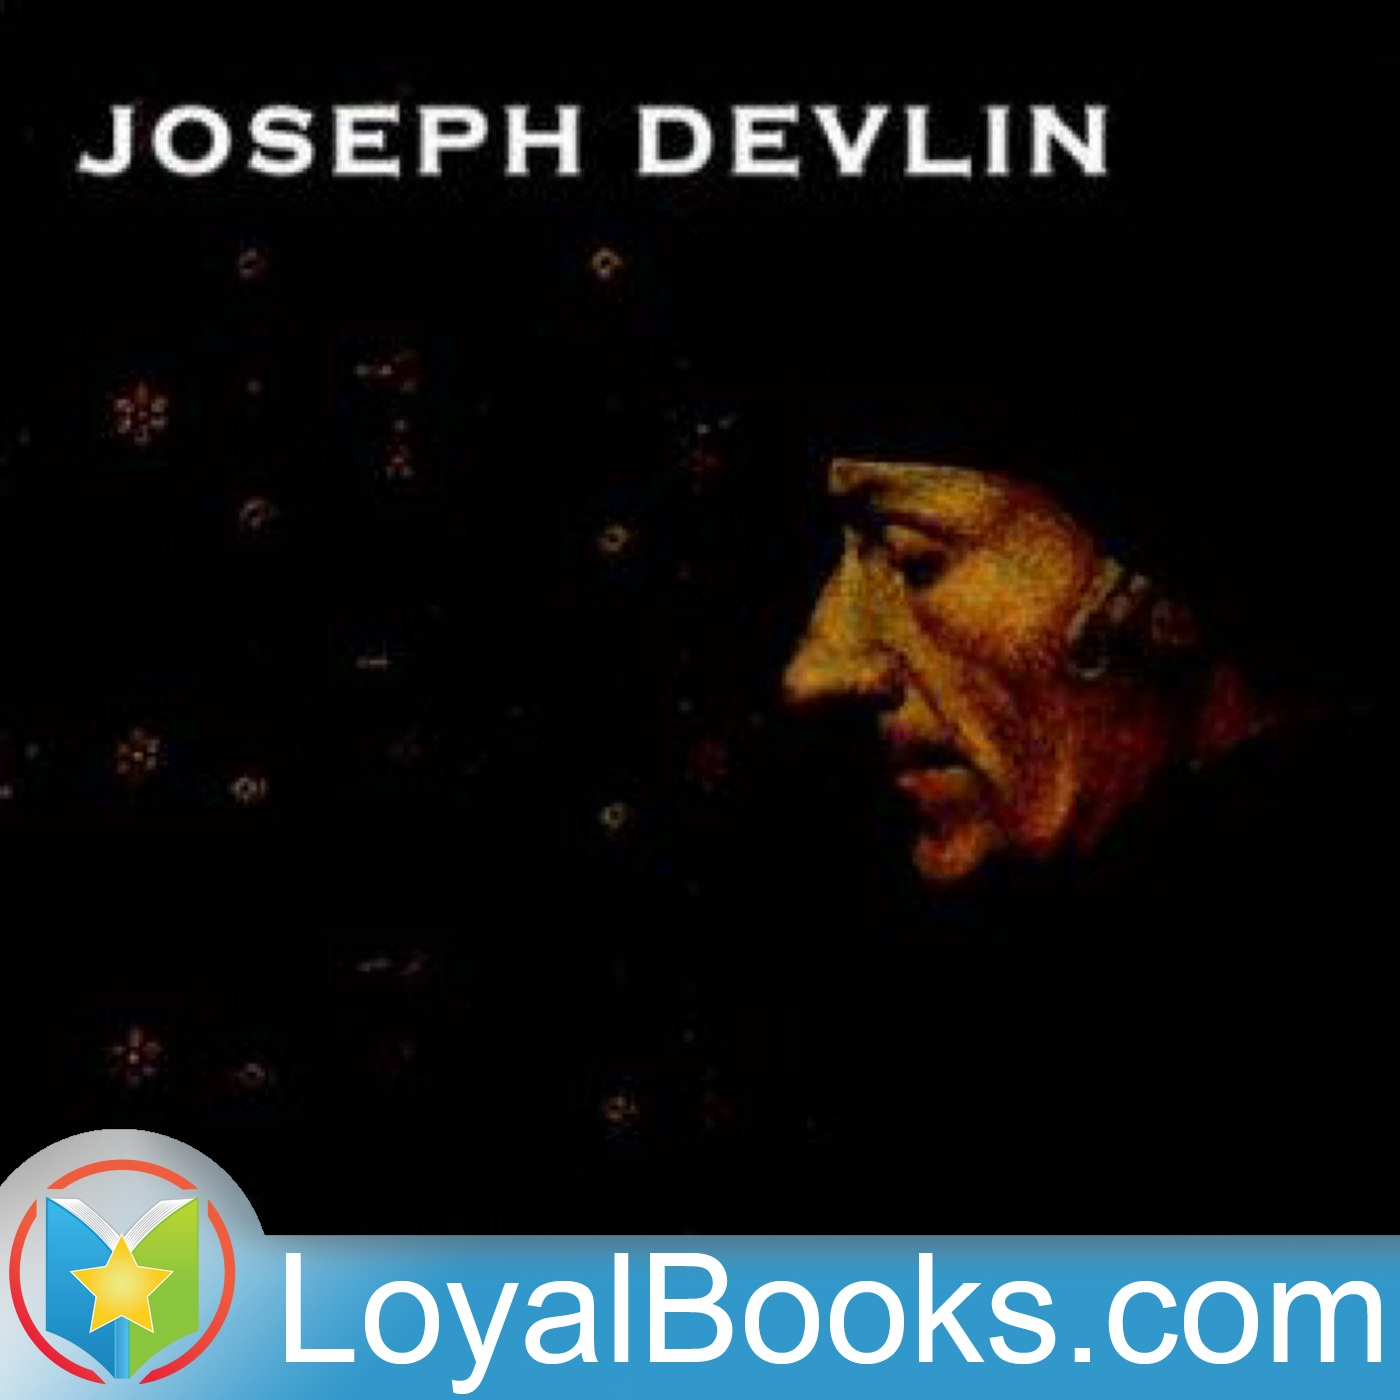 <![CDATA[How to Speak and Write Correctly by Joseph Devlin]]>